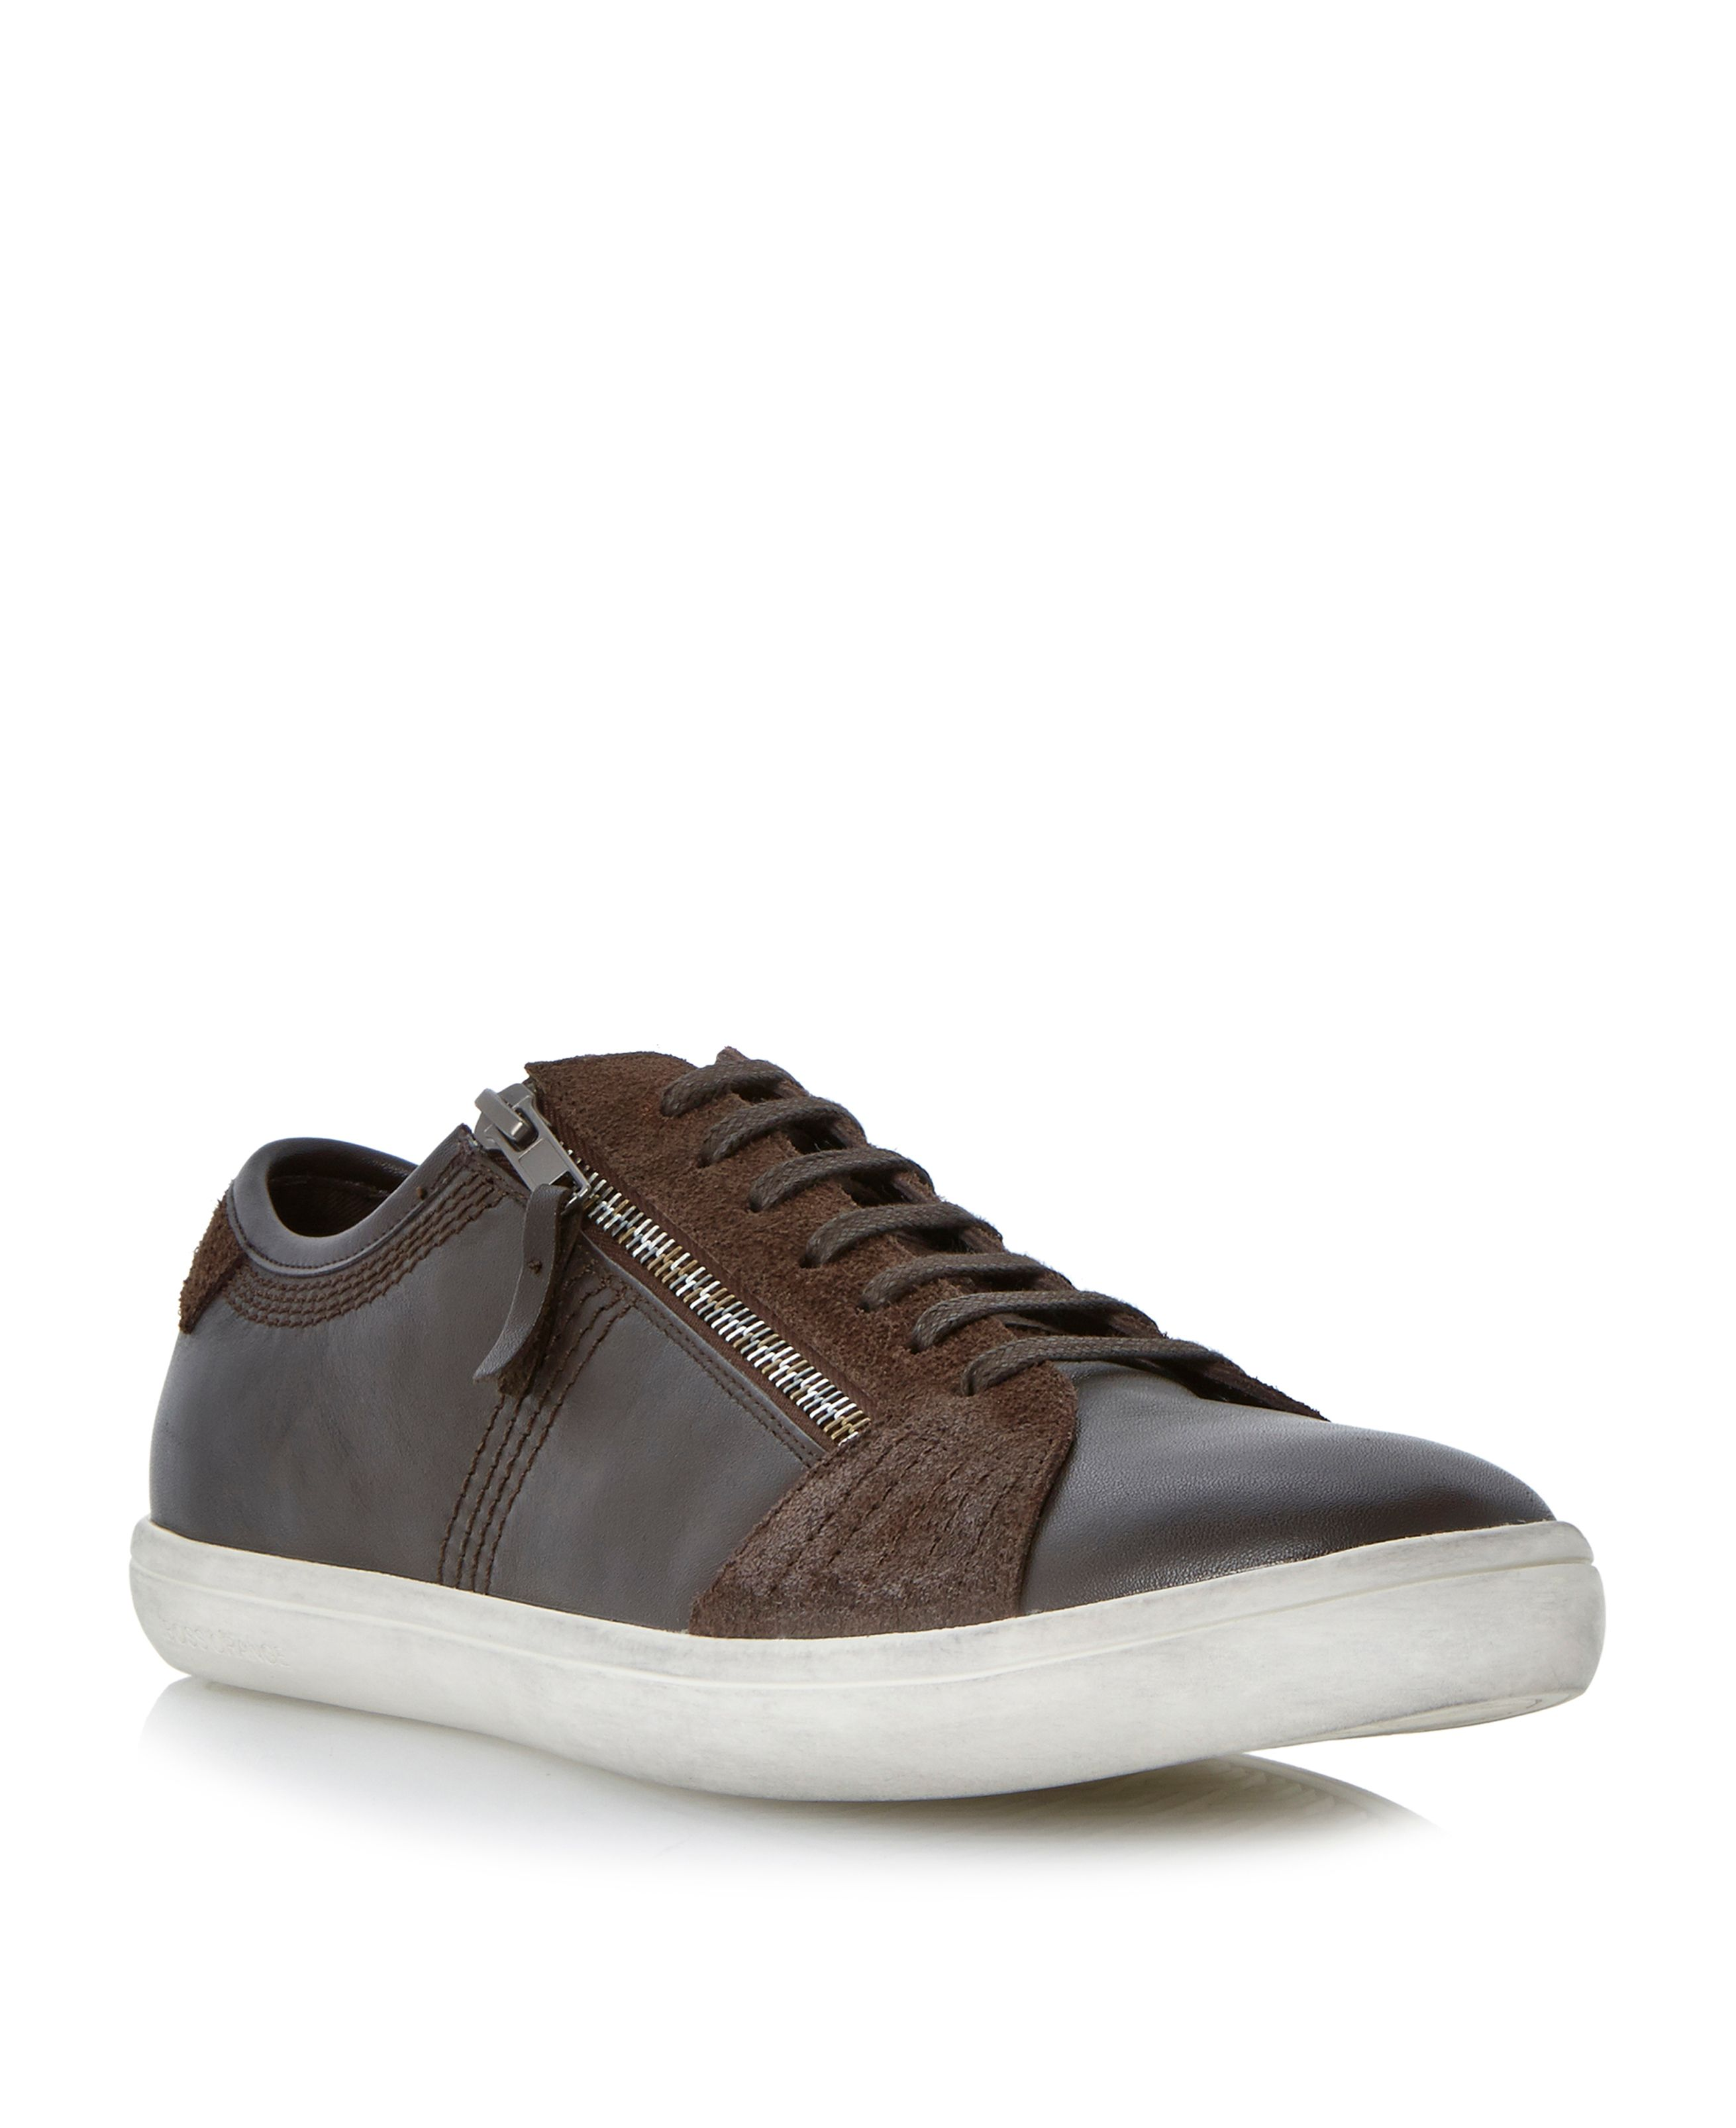 Soundy cupsole side zip lace up trainers